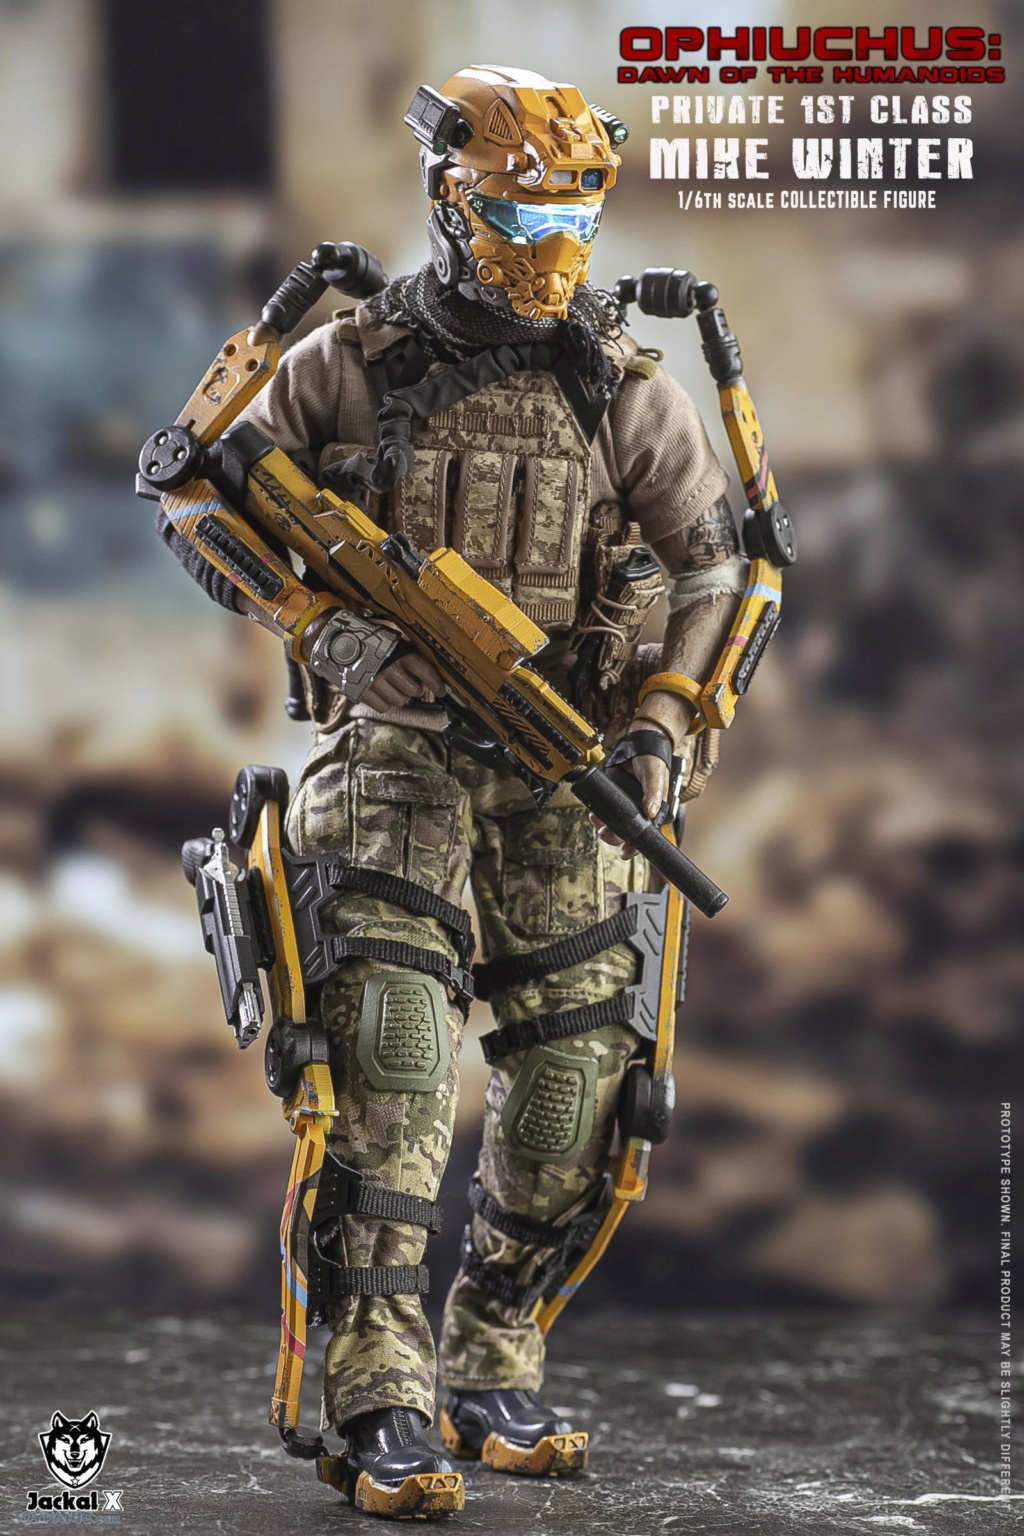 military - NEW PRODUCT: JackalX: 1/6 Ophiuchus: Dawn of Humanoid: Private 1st Class Mike Winter Collectible Figure (2 Versions) 43202014